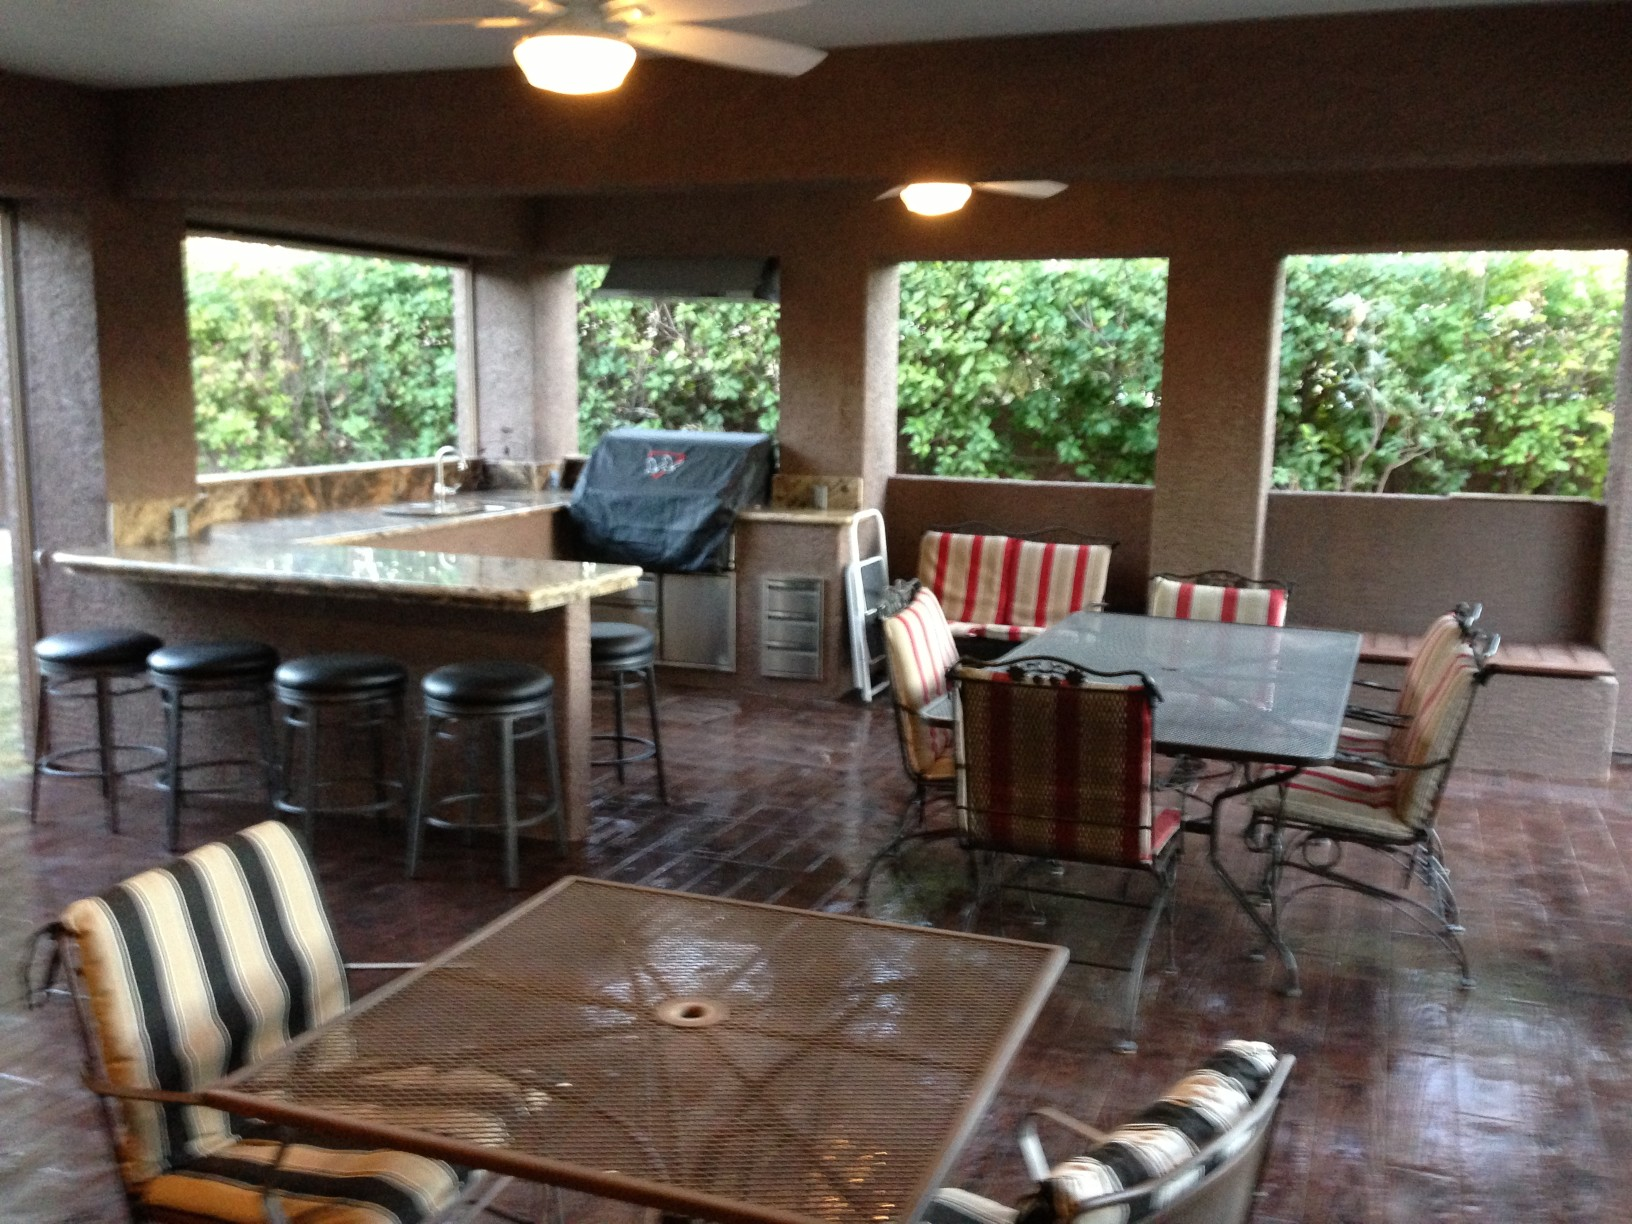 Patio with outdoor kitchen fairless homes henderson nv for Outdoor kitchen and patio